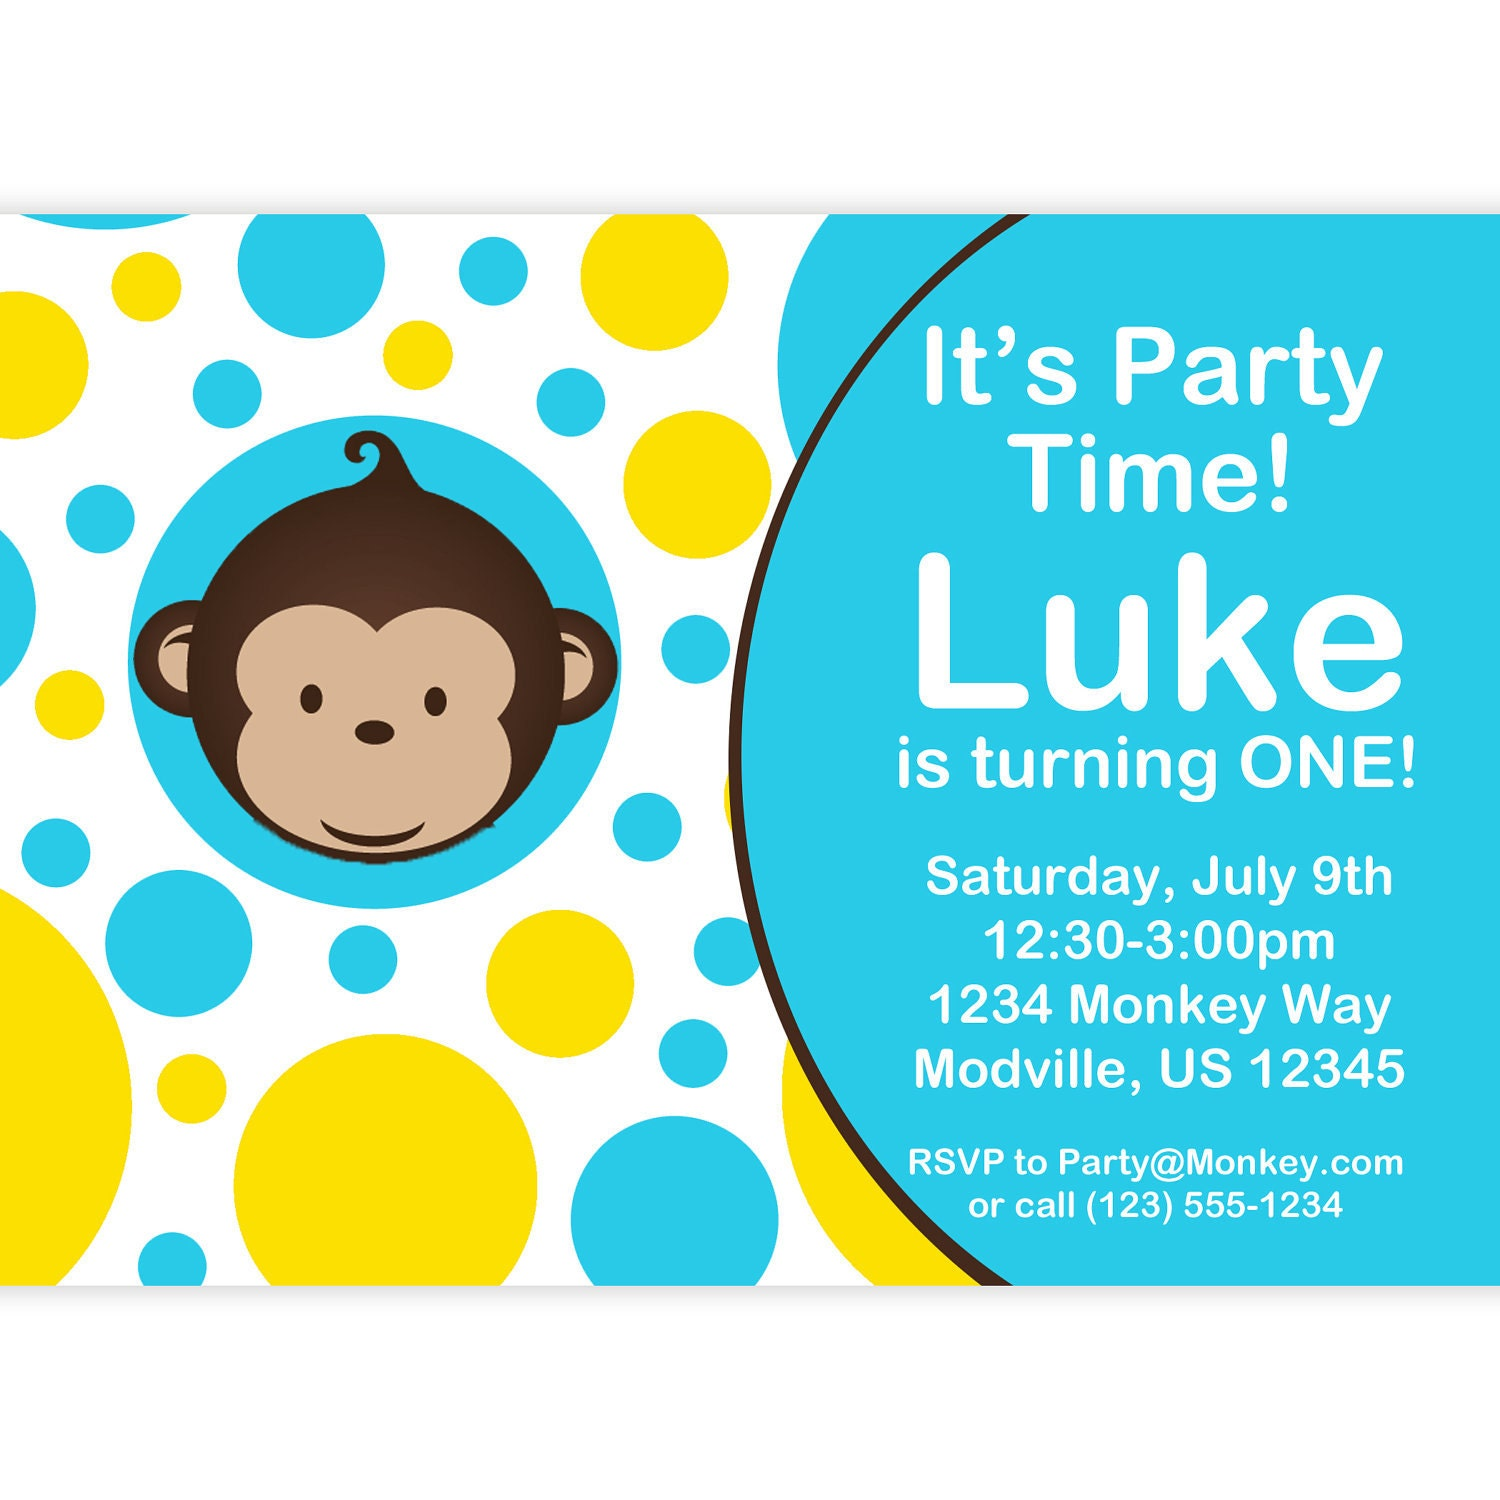 Monkey love party invitations - photo#4